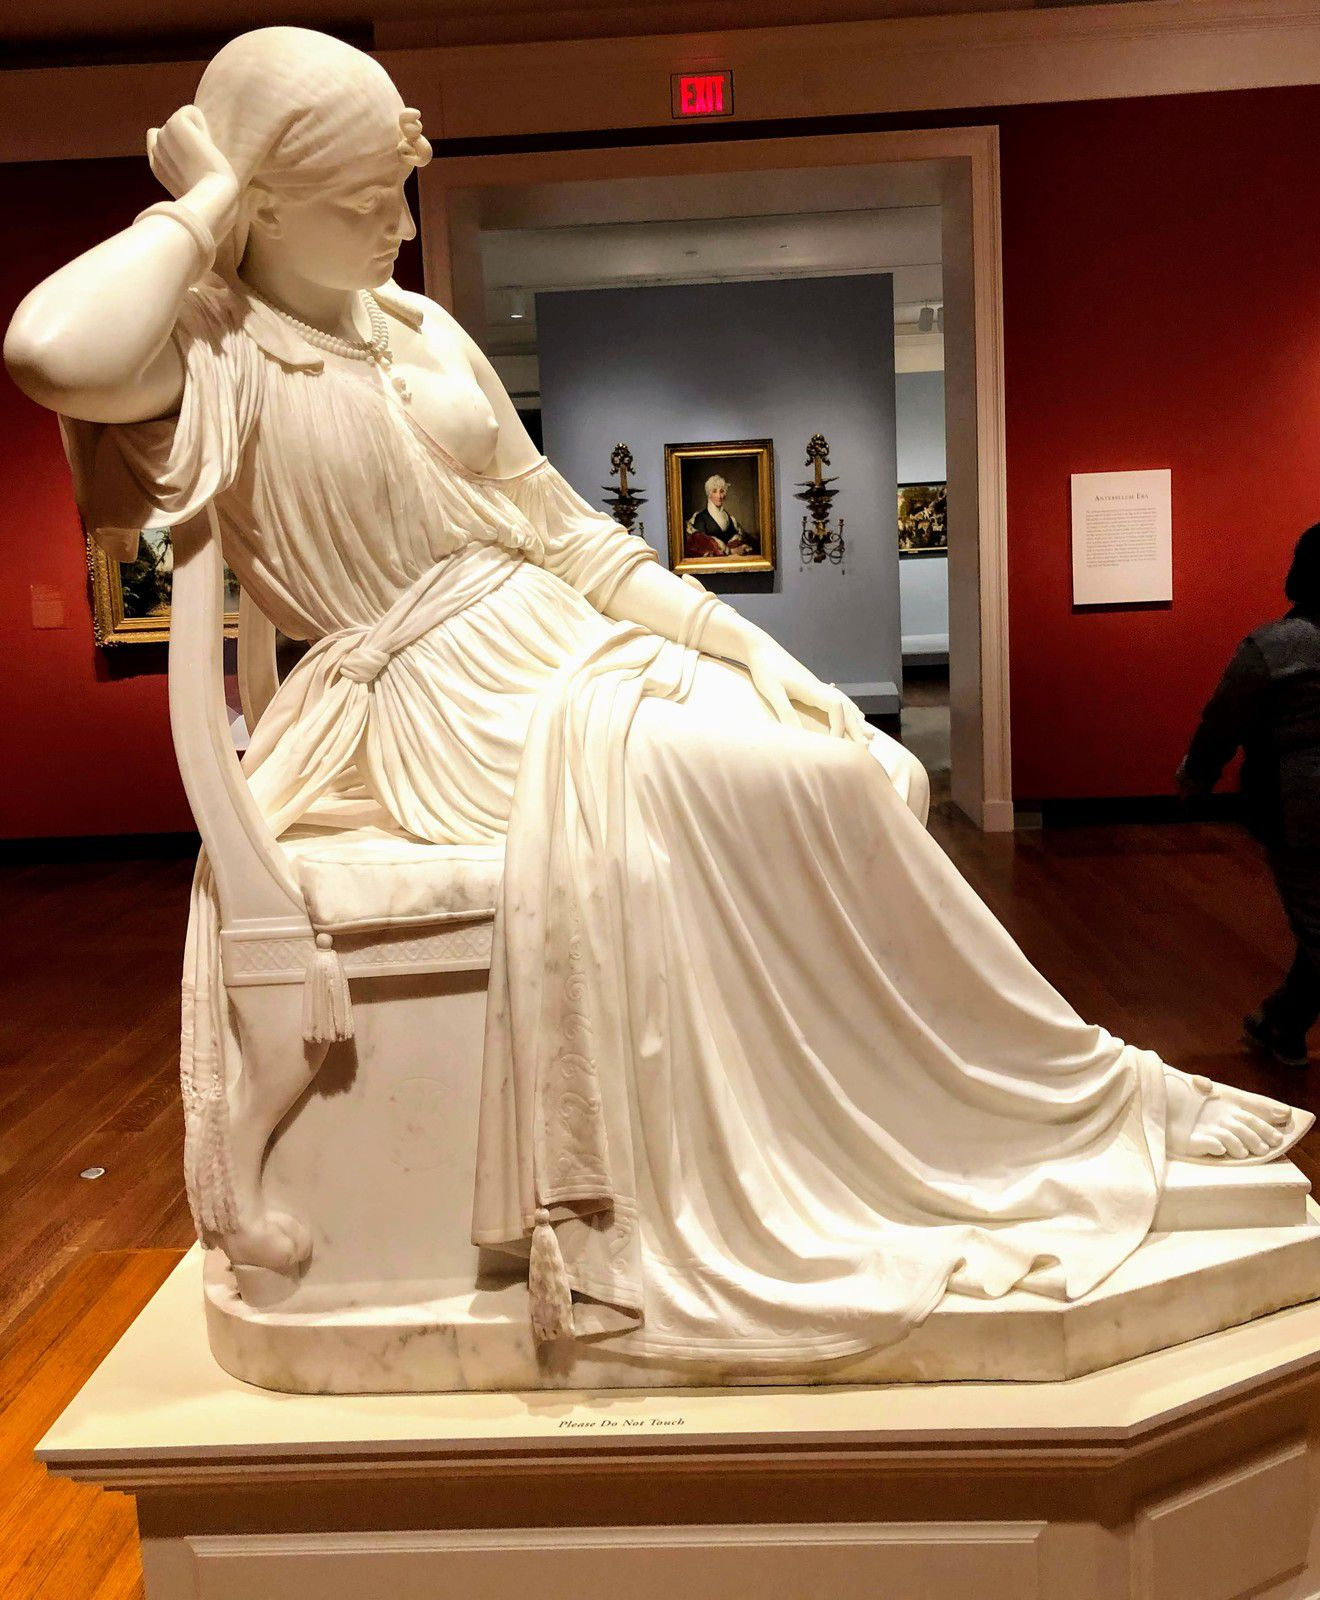 Cleopatra, William Wetmore Story, Marbre, 1865